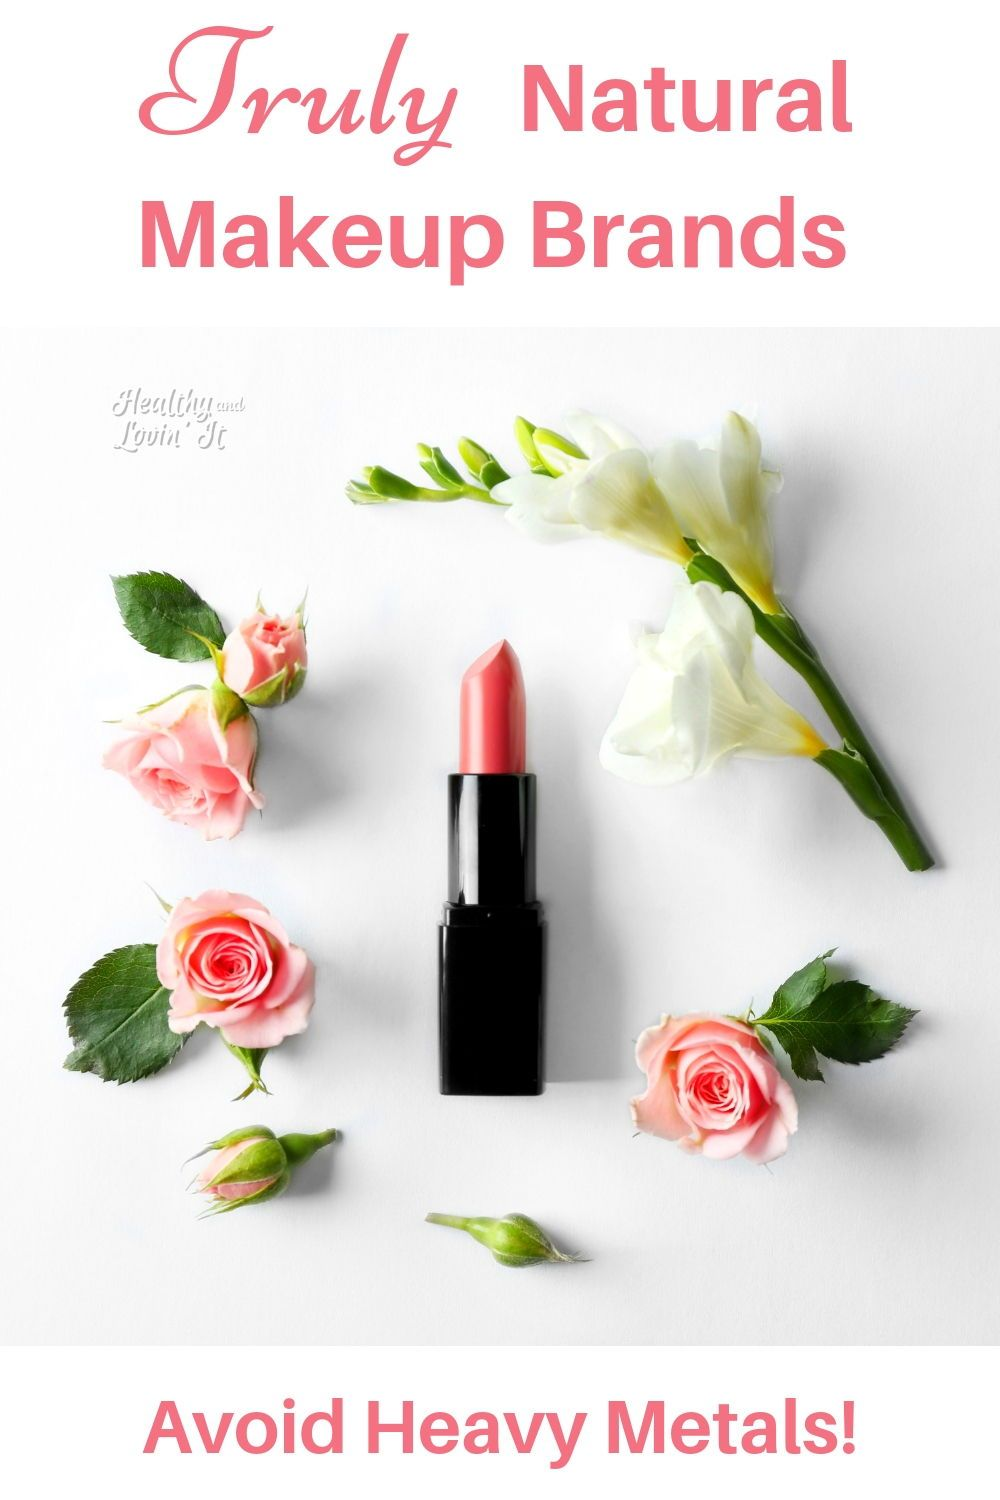 Natural Makeup Brands No Toxic Ingredients or Heavy